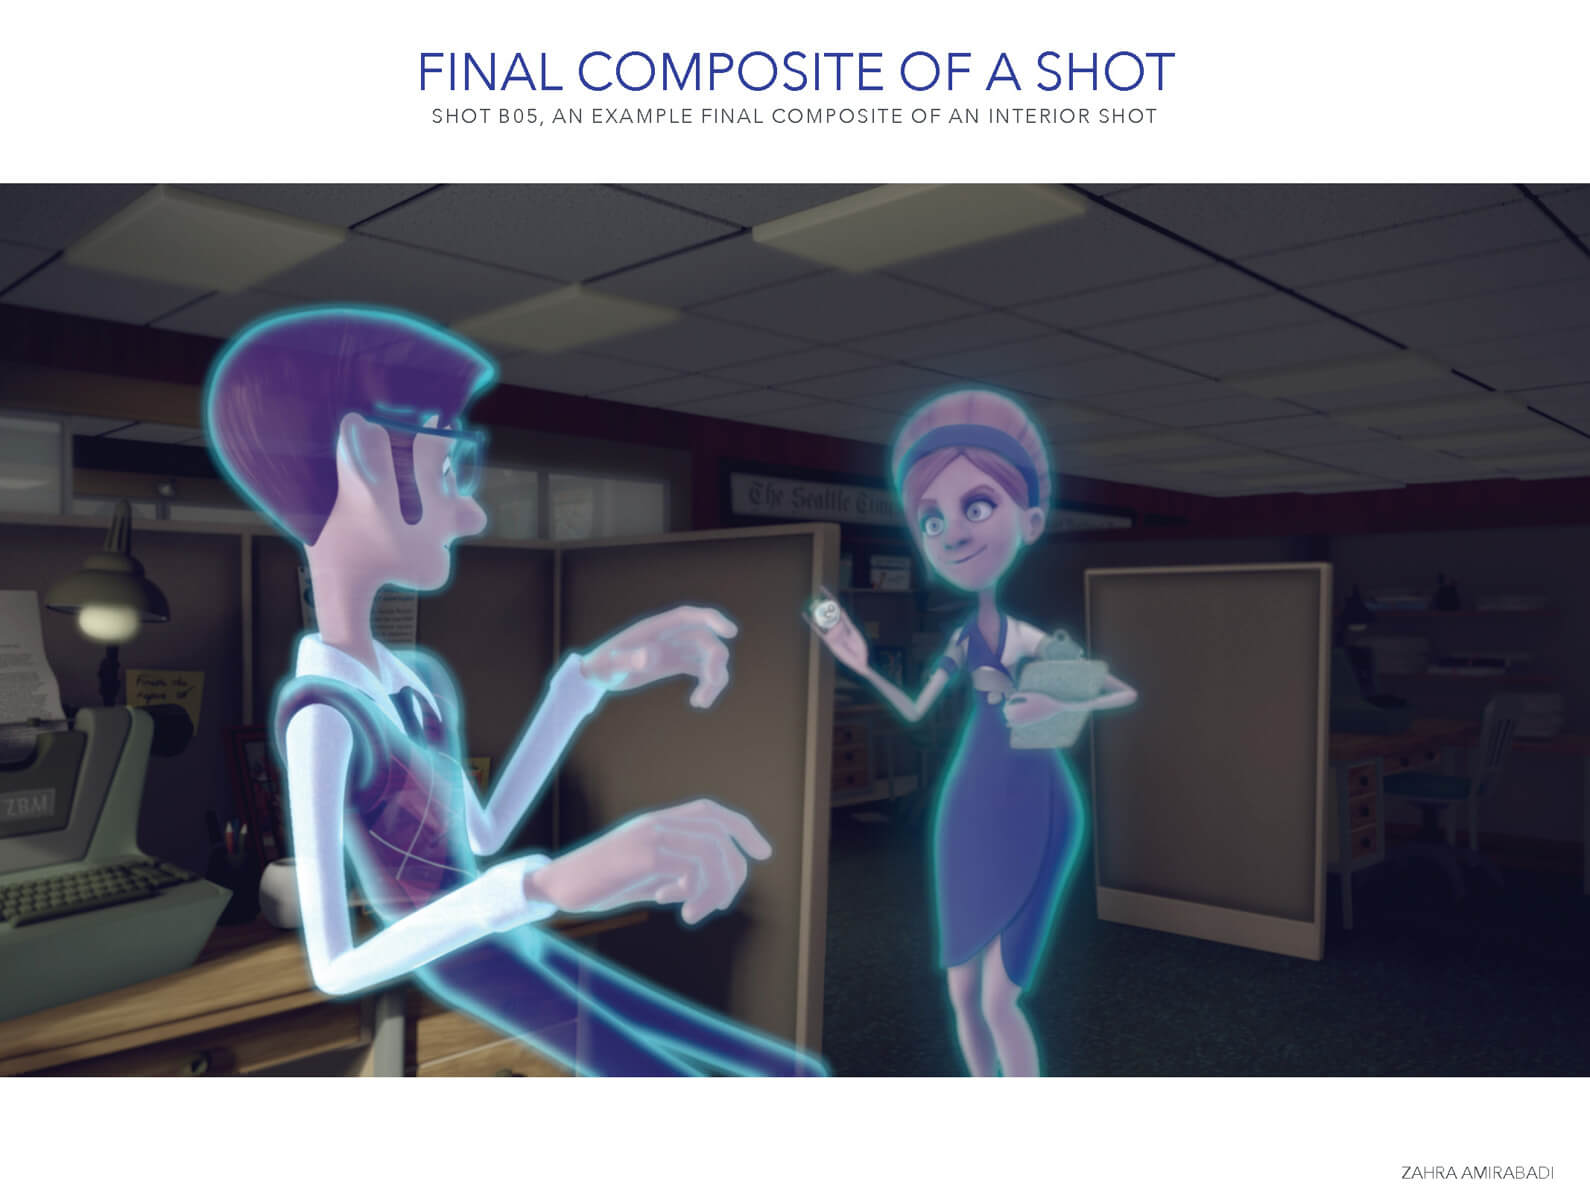 Final composite of a shot of the man and woman ghosts in an office setting in Orientation Center for the Unseen